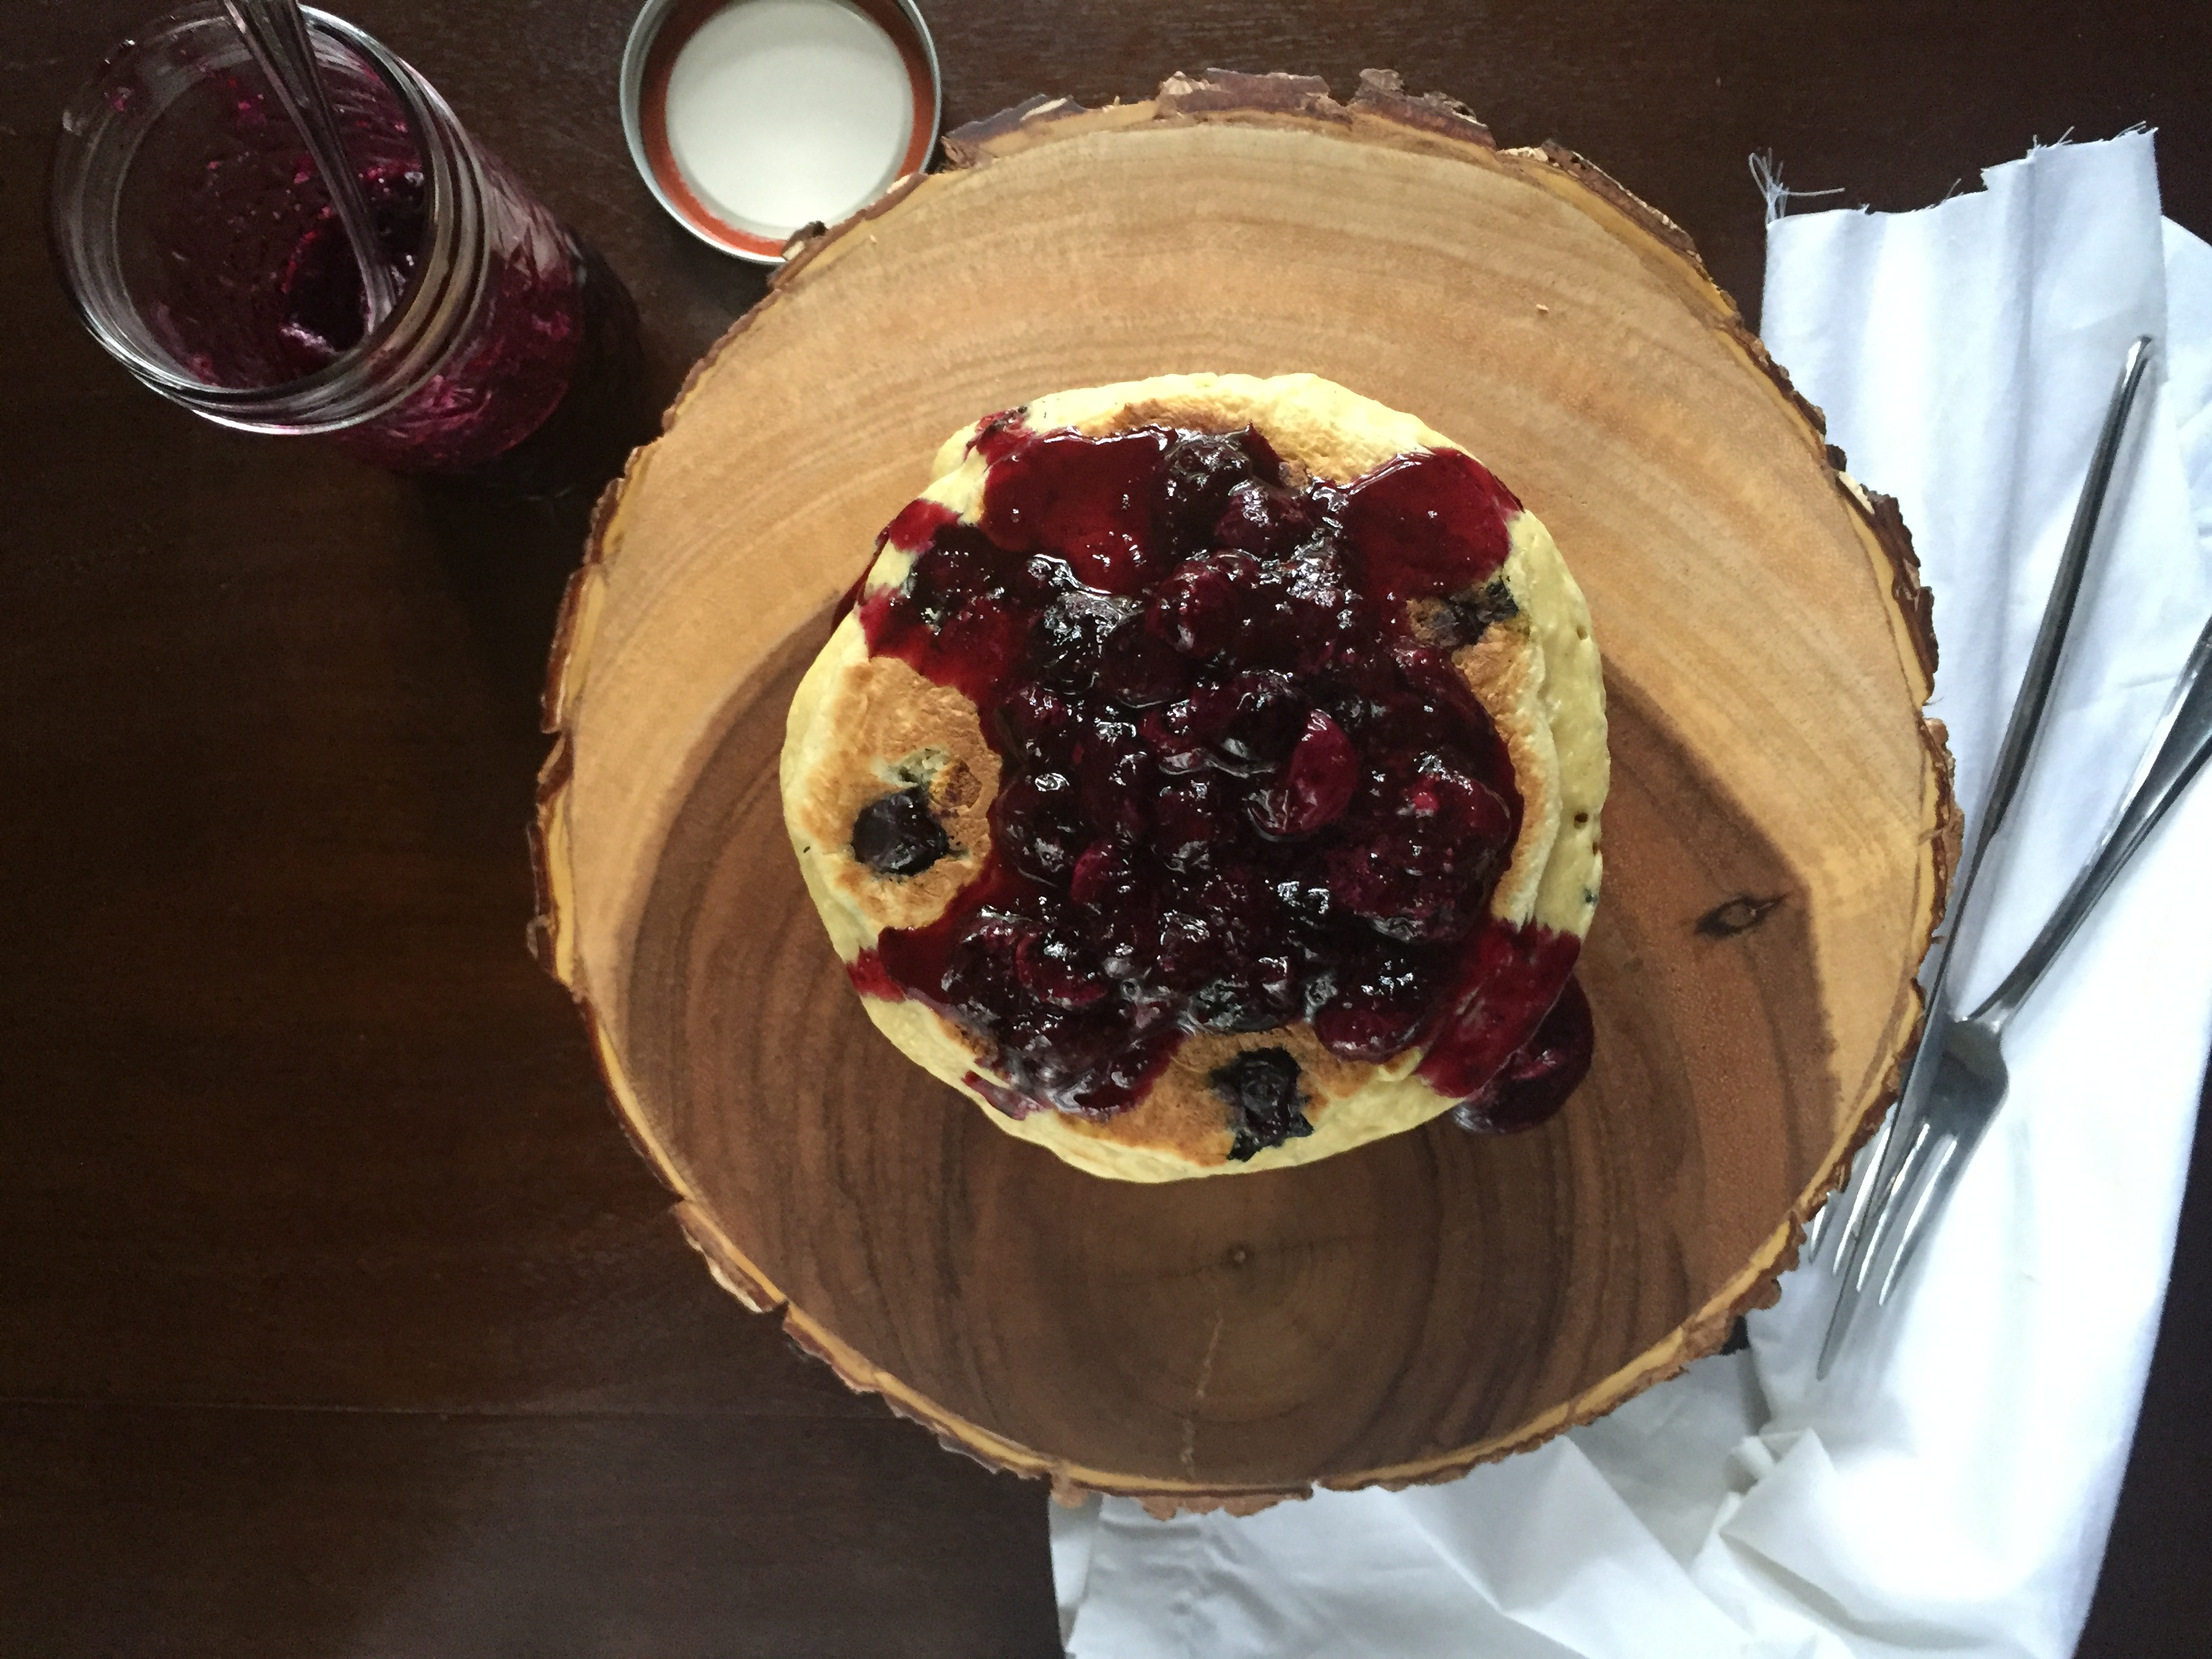 Best Ever Blueberry Pancakes with Compote | dashofjazz.com